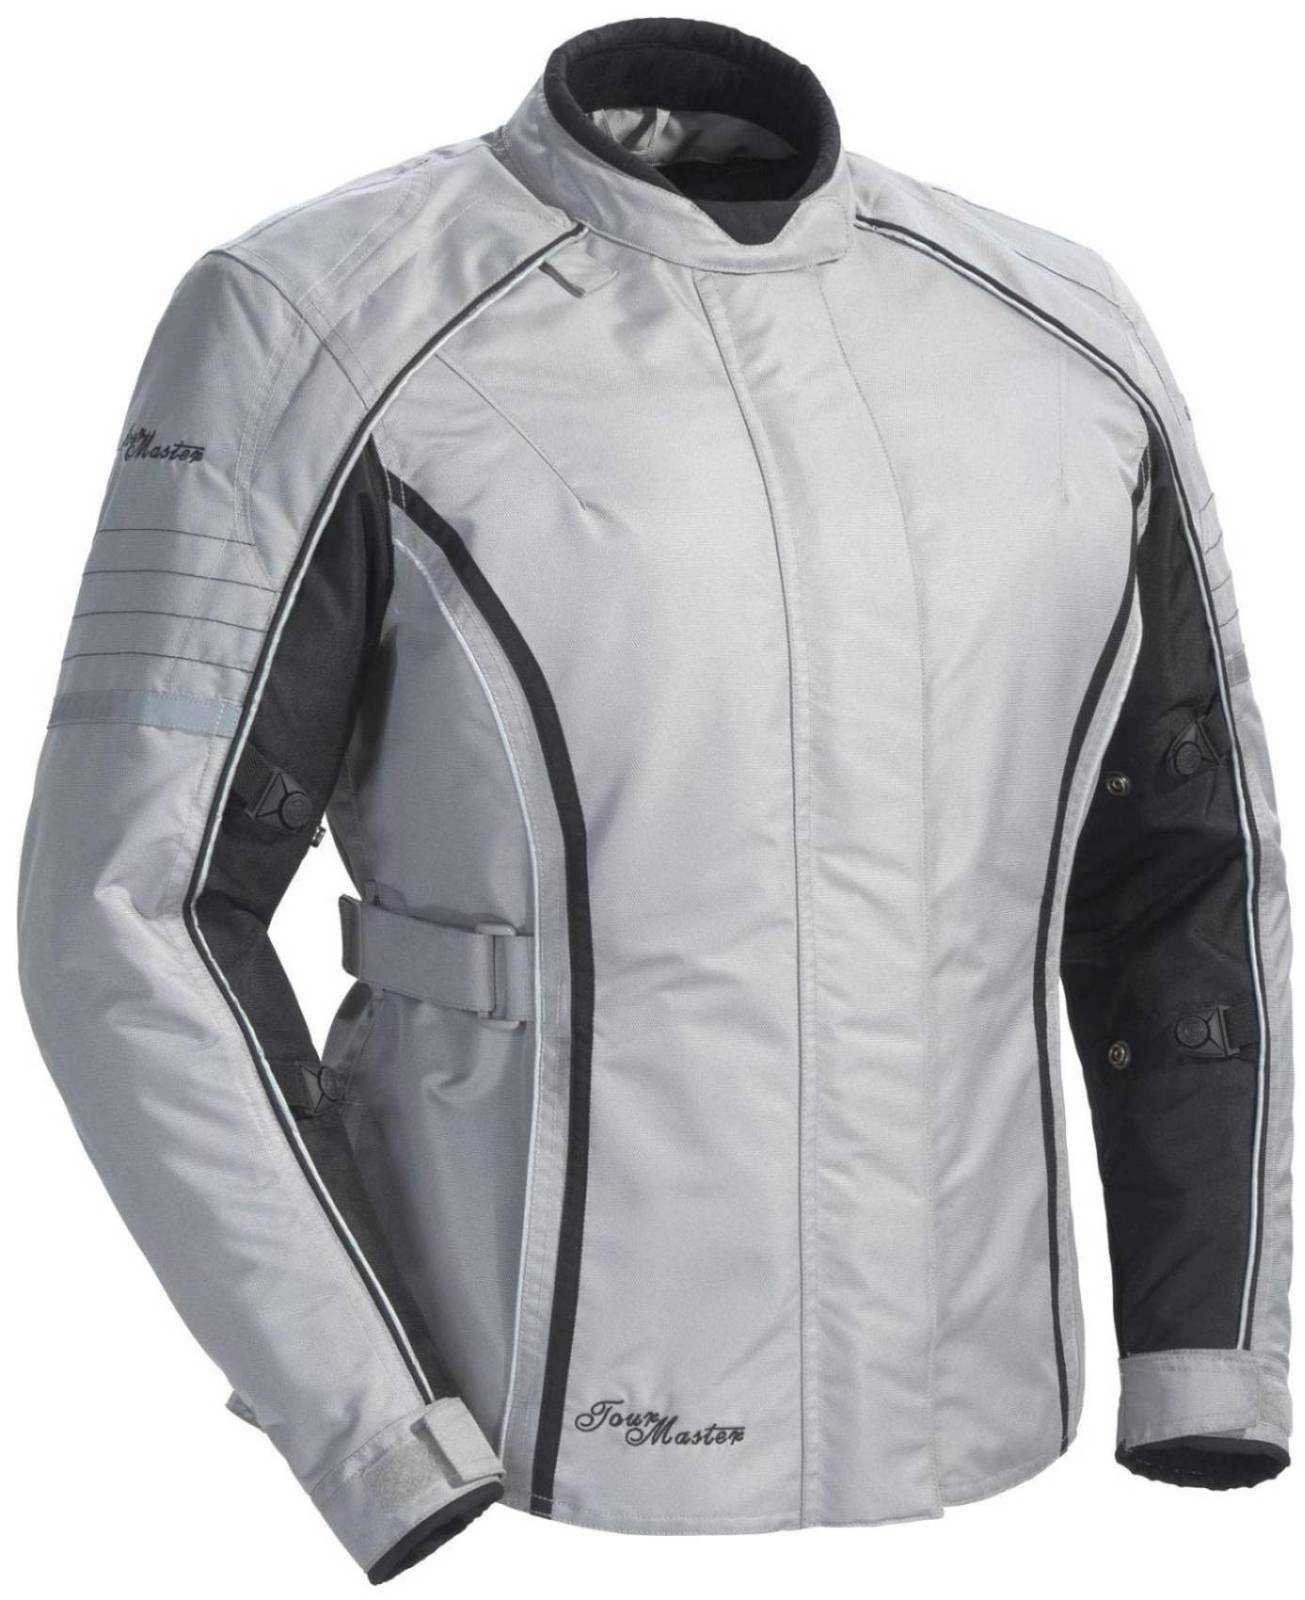 Tourmaster Womens Trinity Series 3 Silver Textile Jacket - Medium by Tourmaster